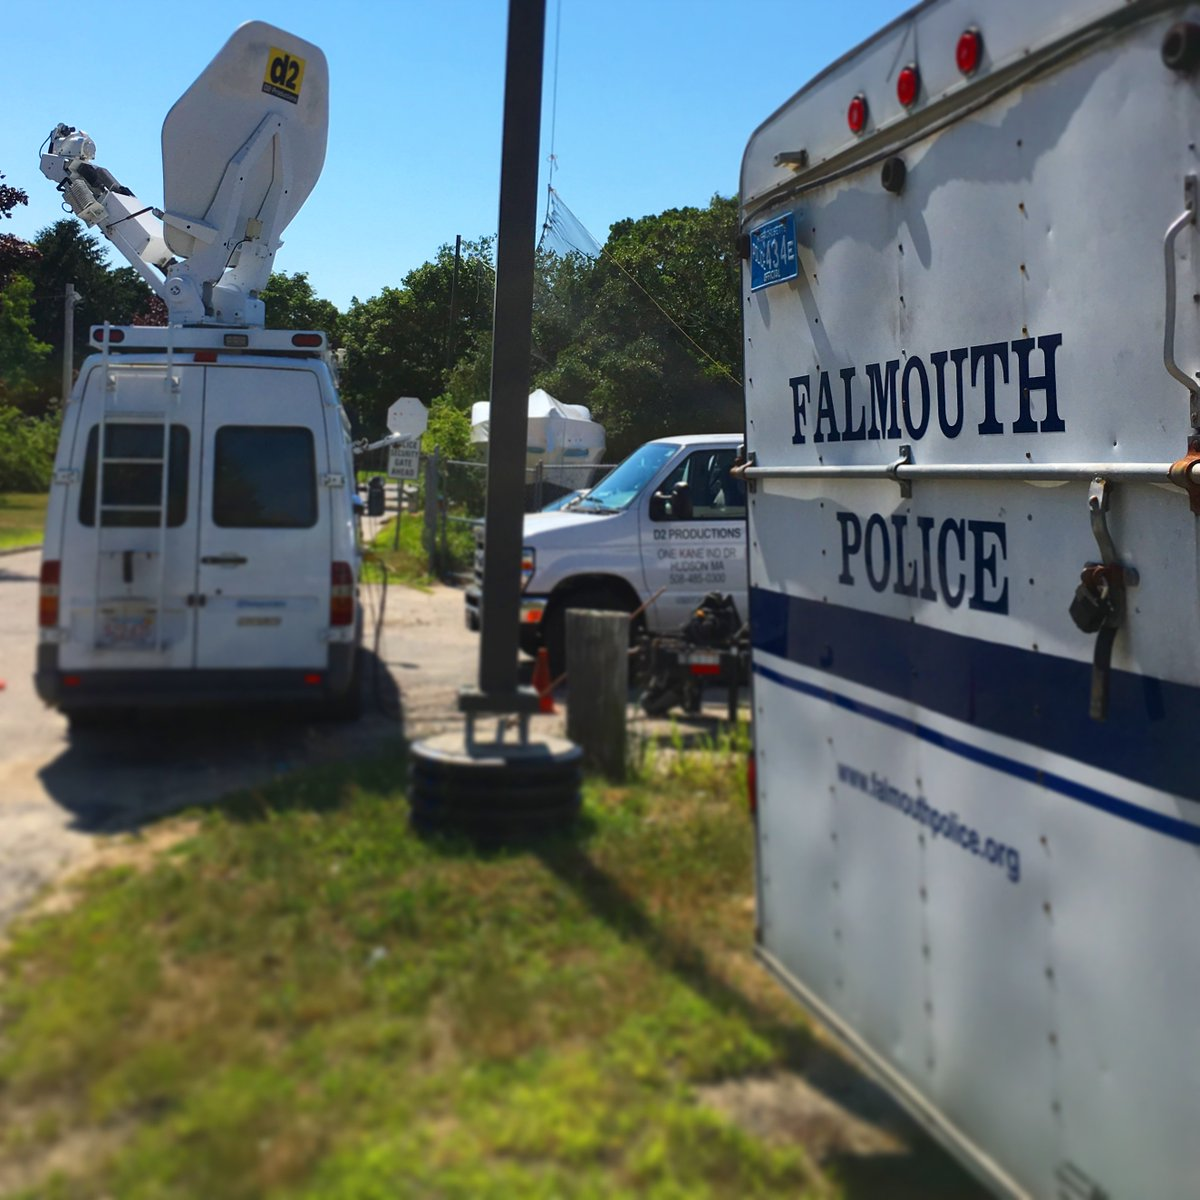 THX to @falmouth_police for use of their impound lot @WarehamGatemen visit @FalCommodores on @FoxCollegeSport @6pm